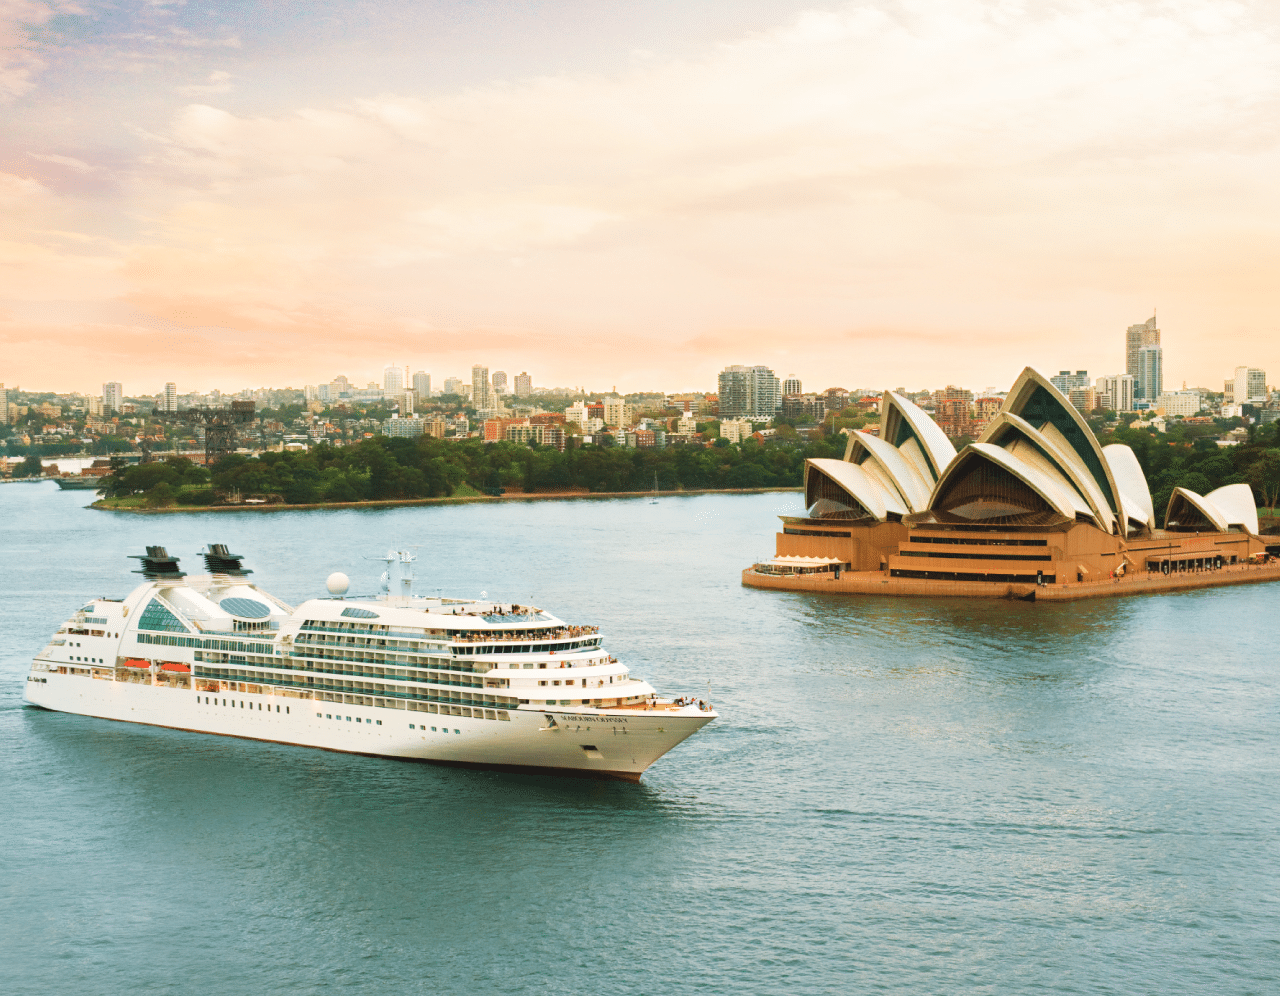 seabourn cruise- Odessy in Sydney